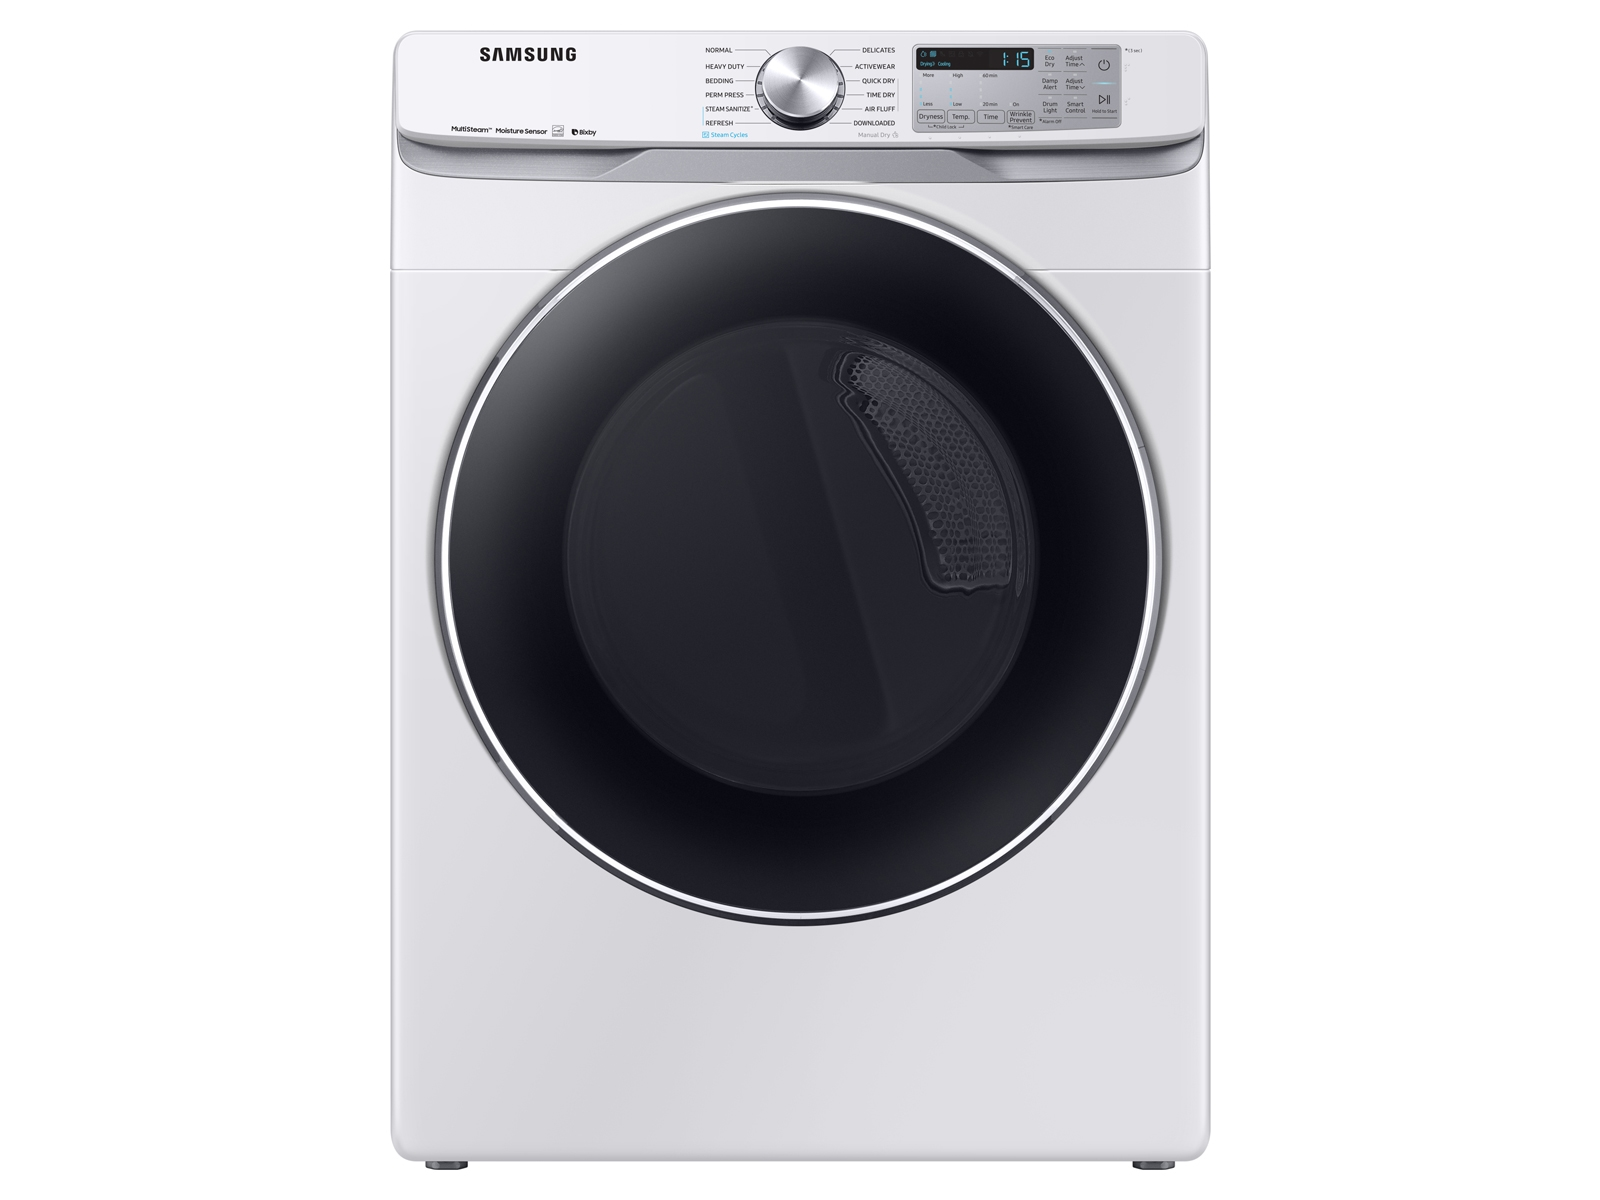 Samsung 7.5 cu. ft. Smart Electric Dryer with Steam Sanitize+ in White